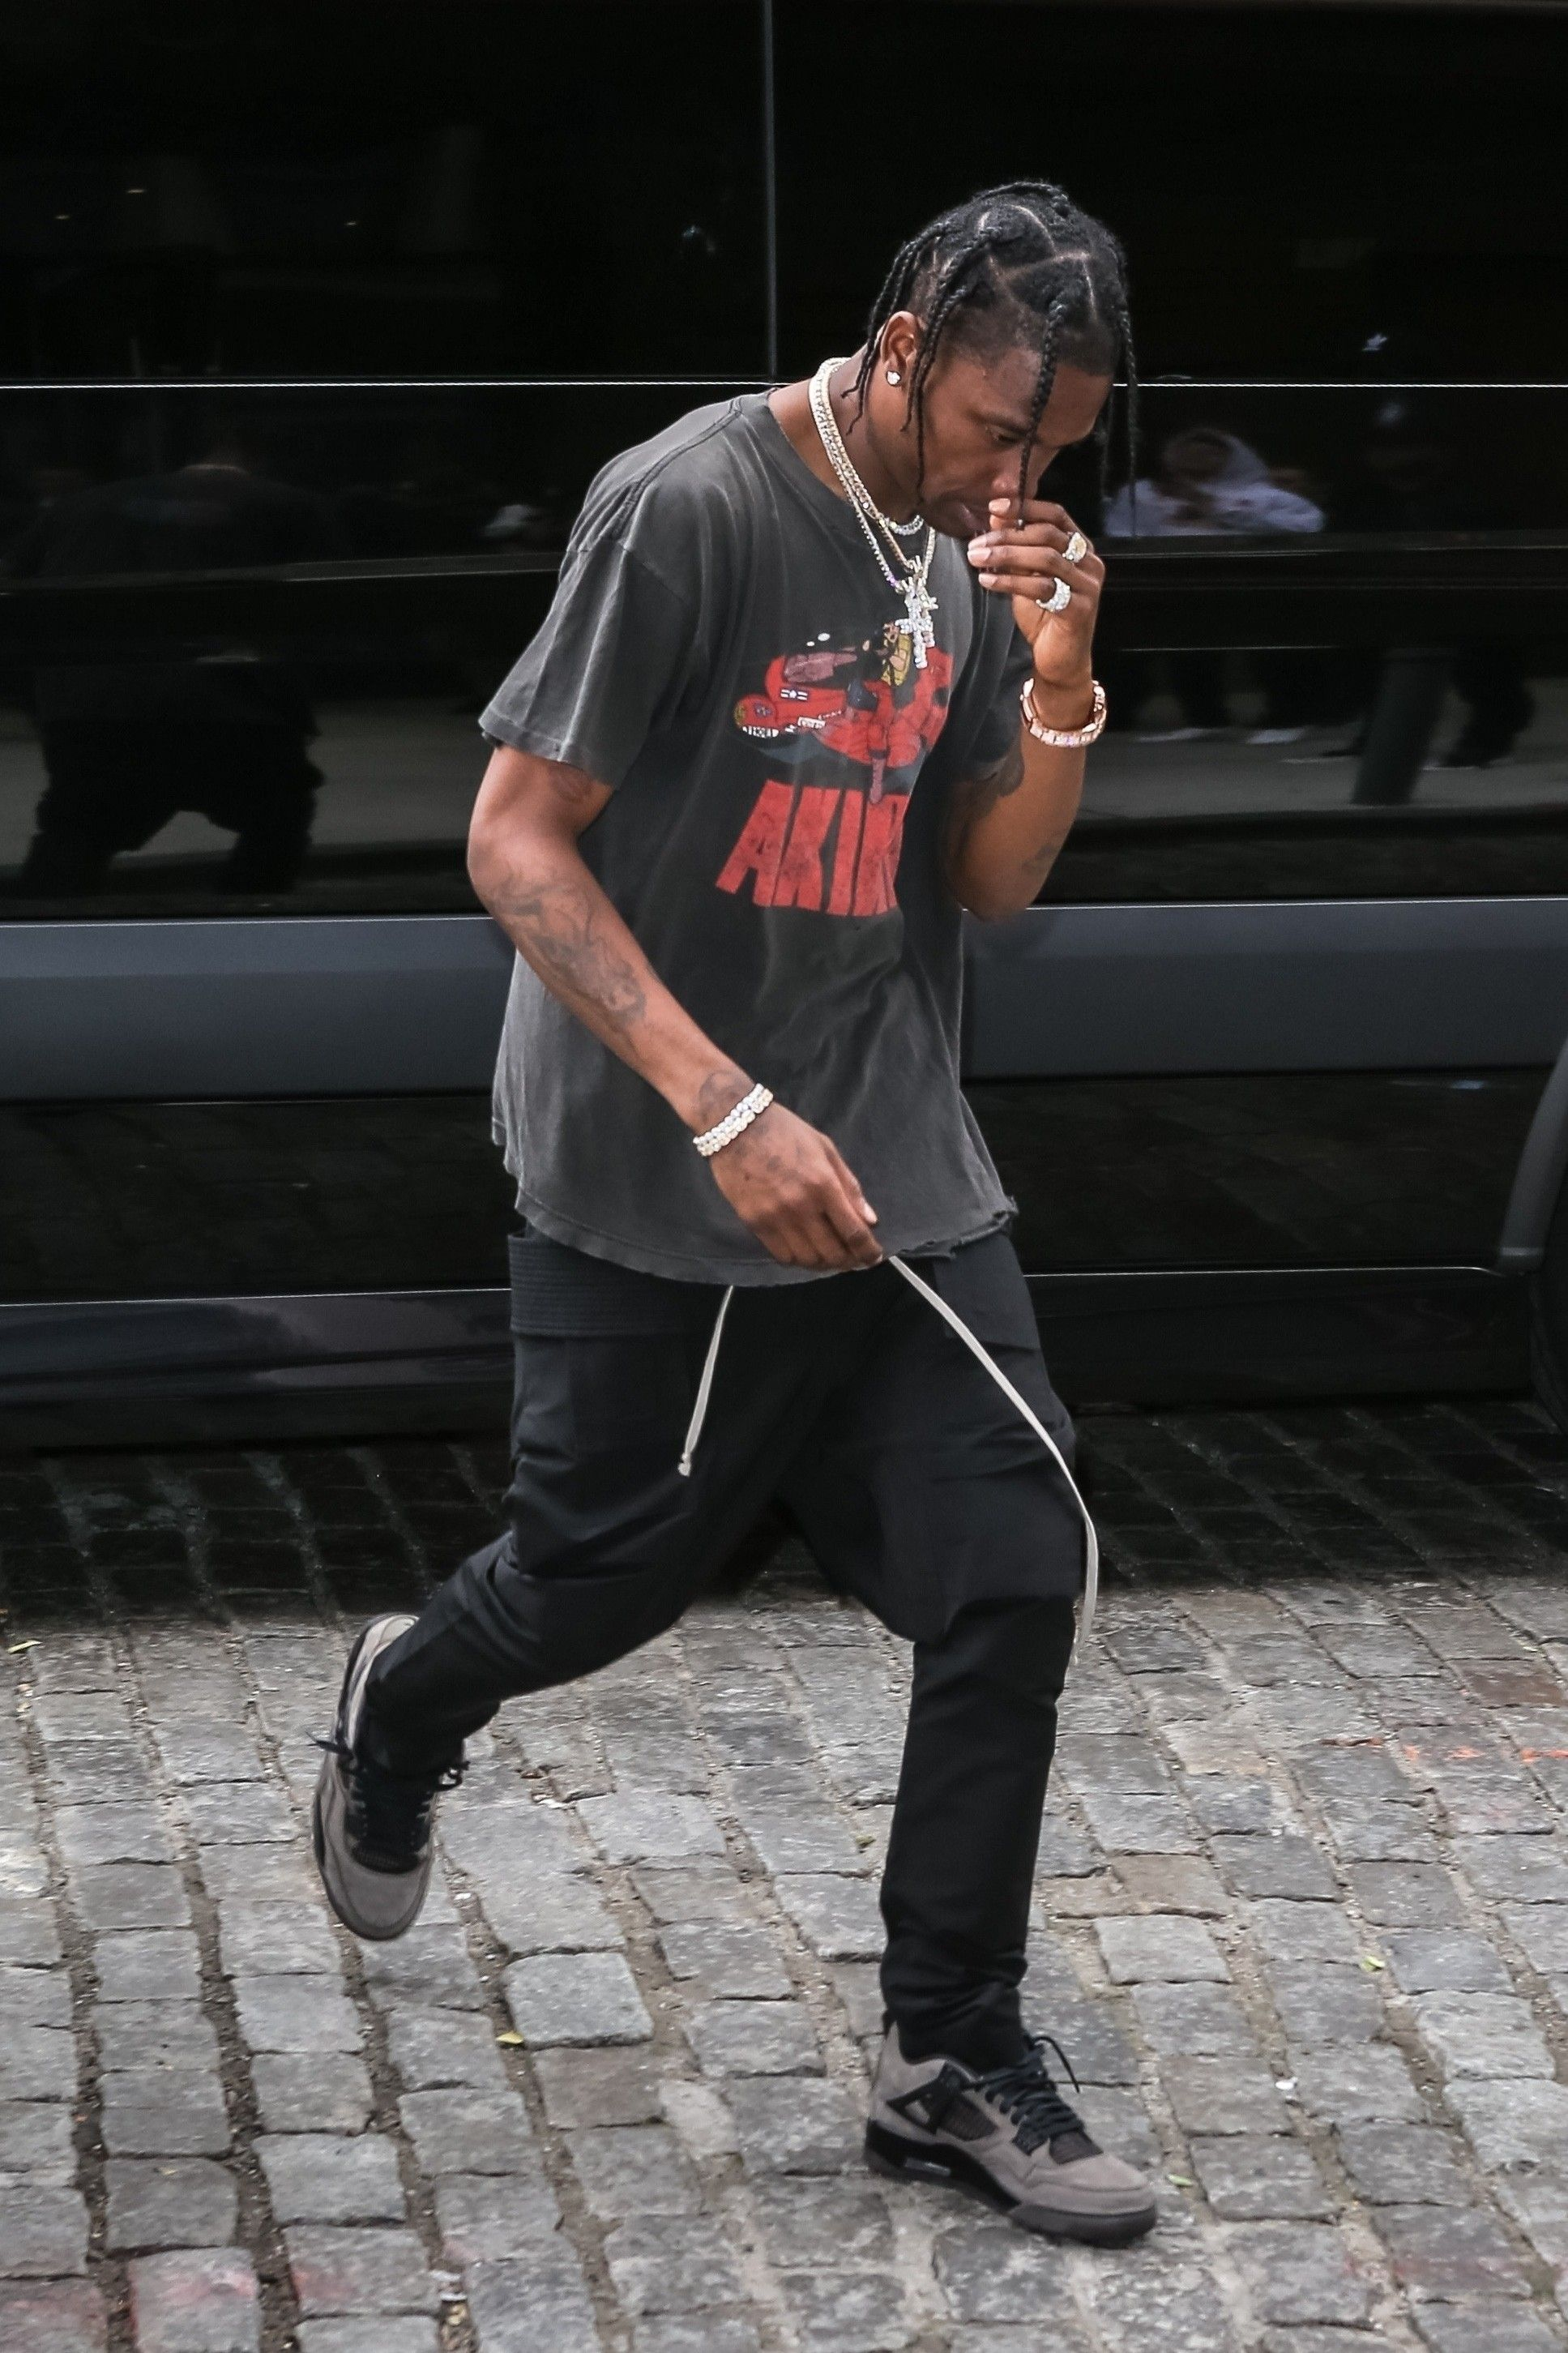 ba09e9a0 Travis Scott wearing Vintage Tees, Rick Owens Pants and Jordan Sneakers